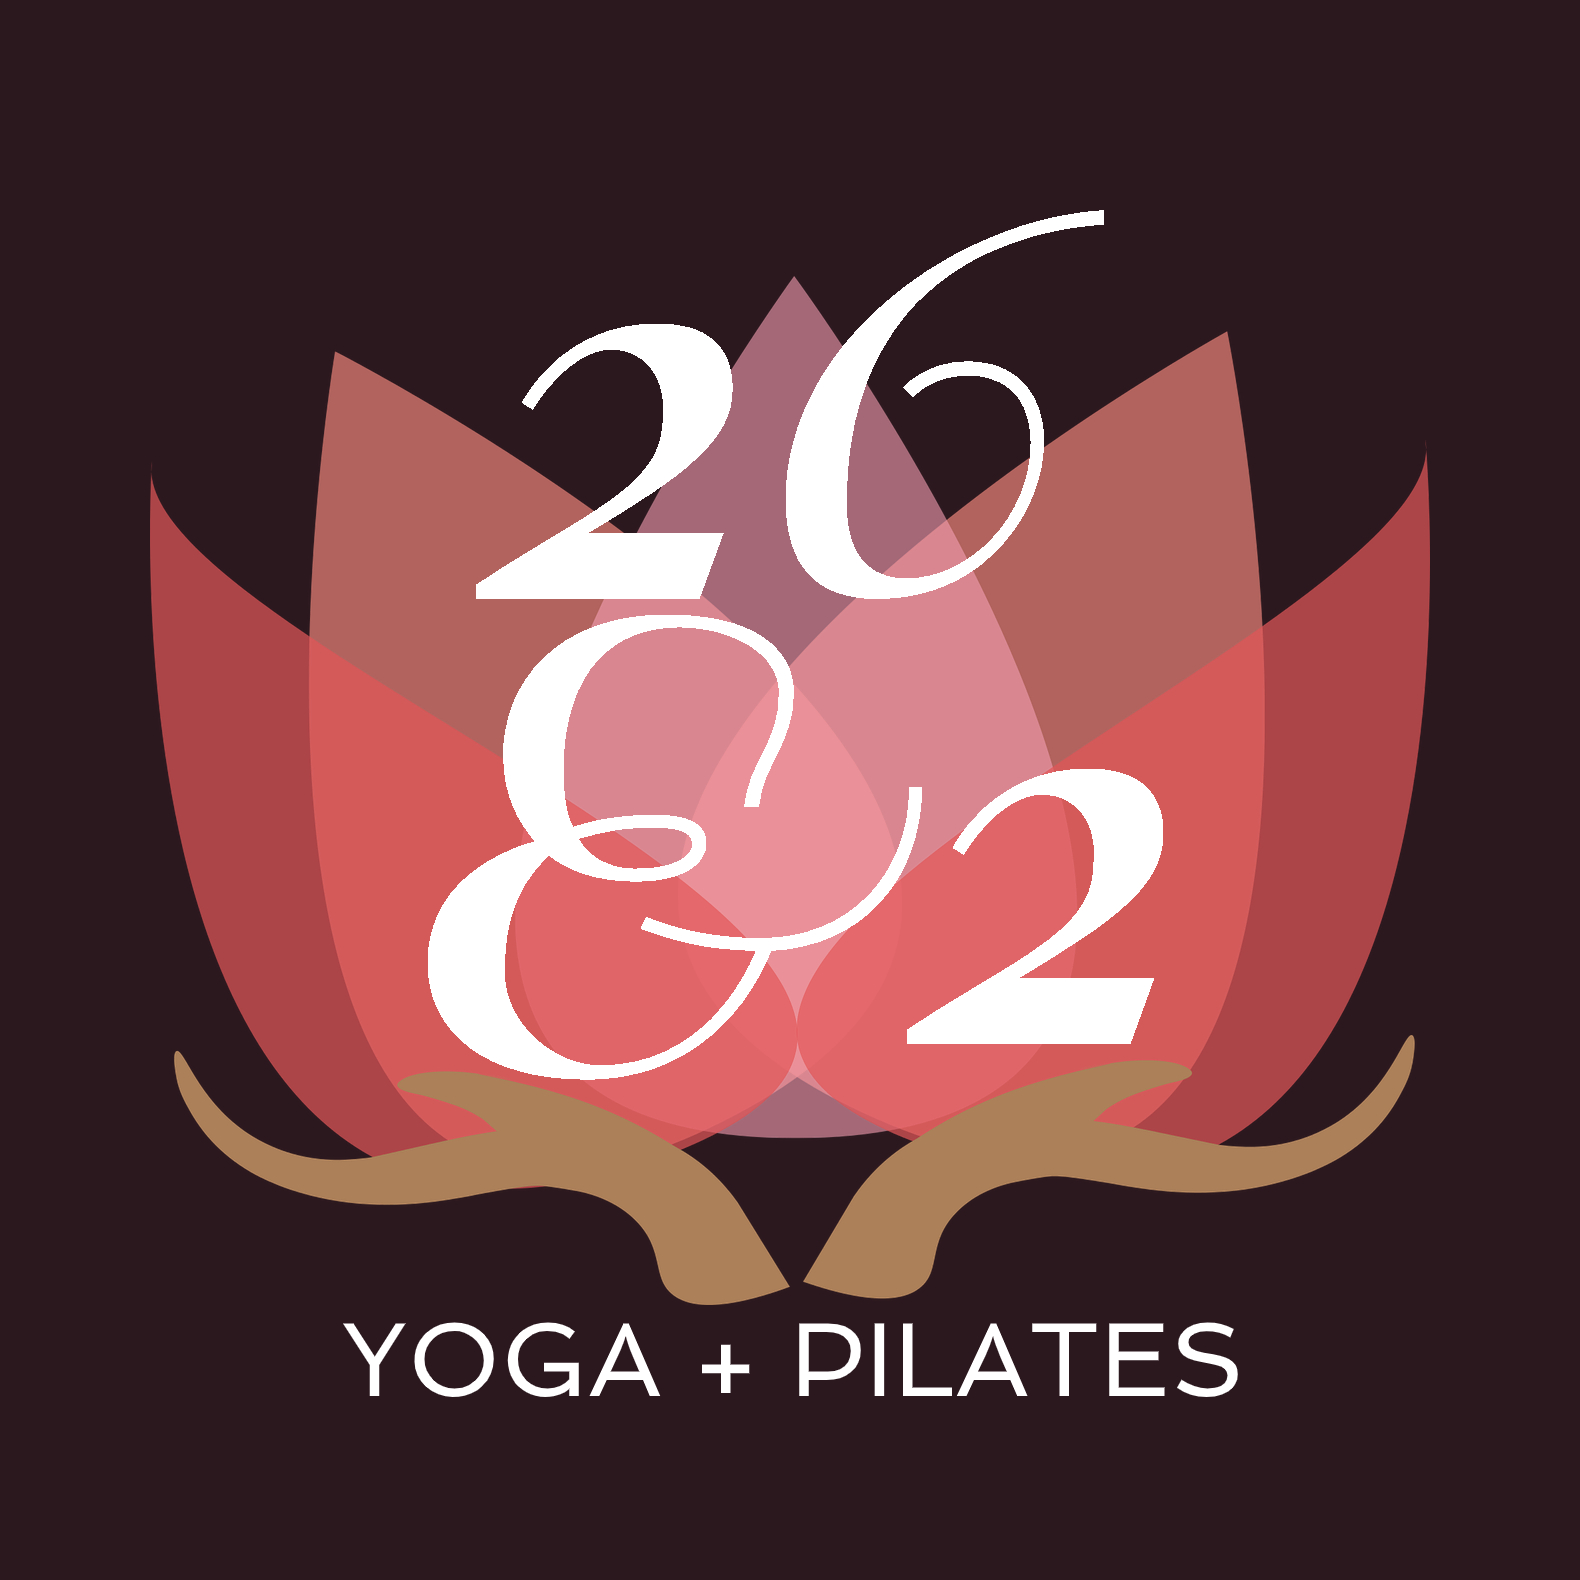 26&2Yoga+Pillates